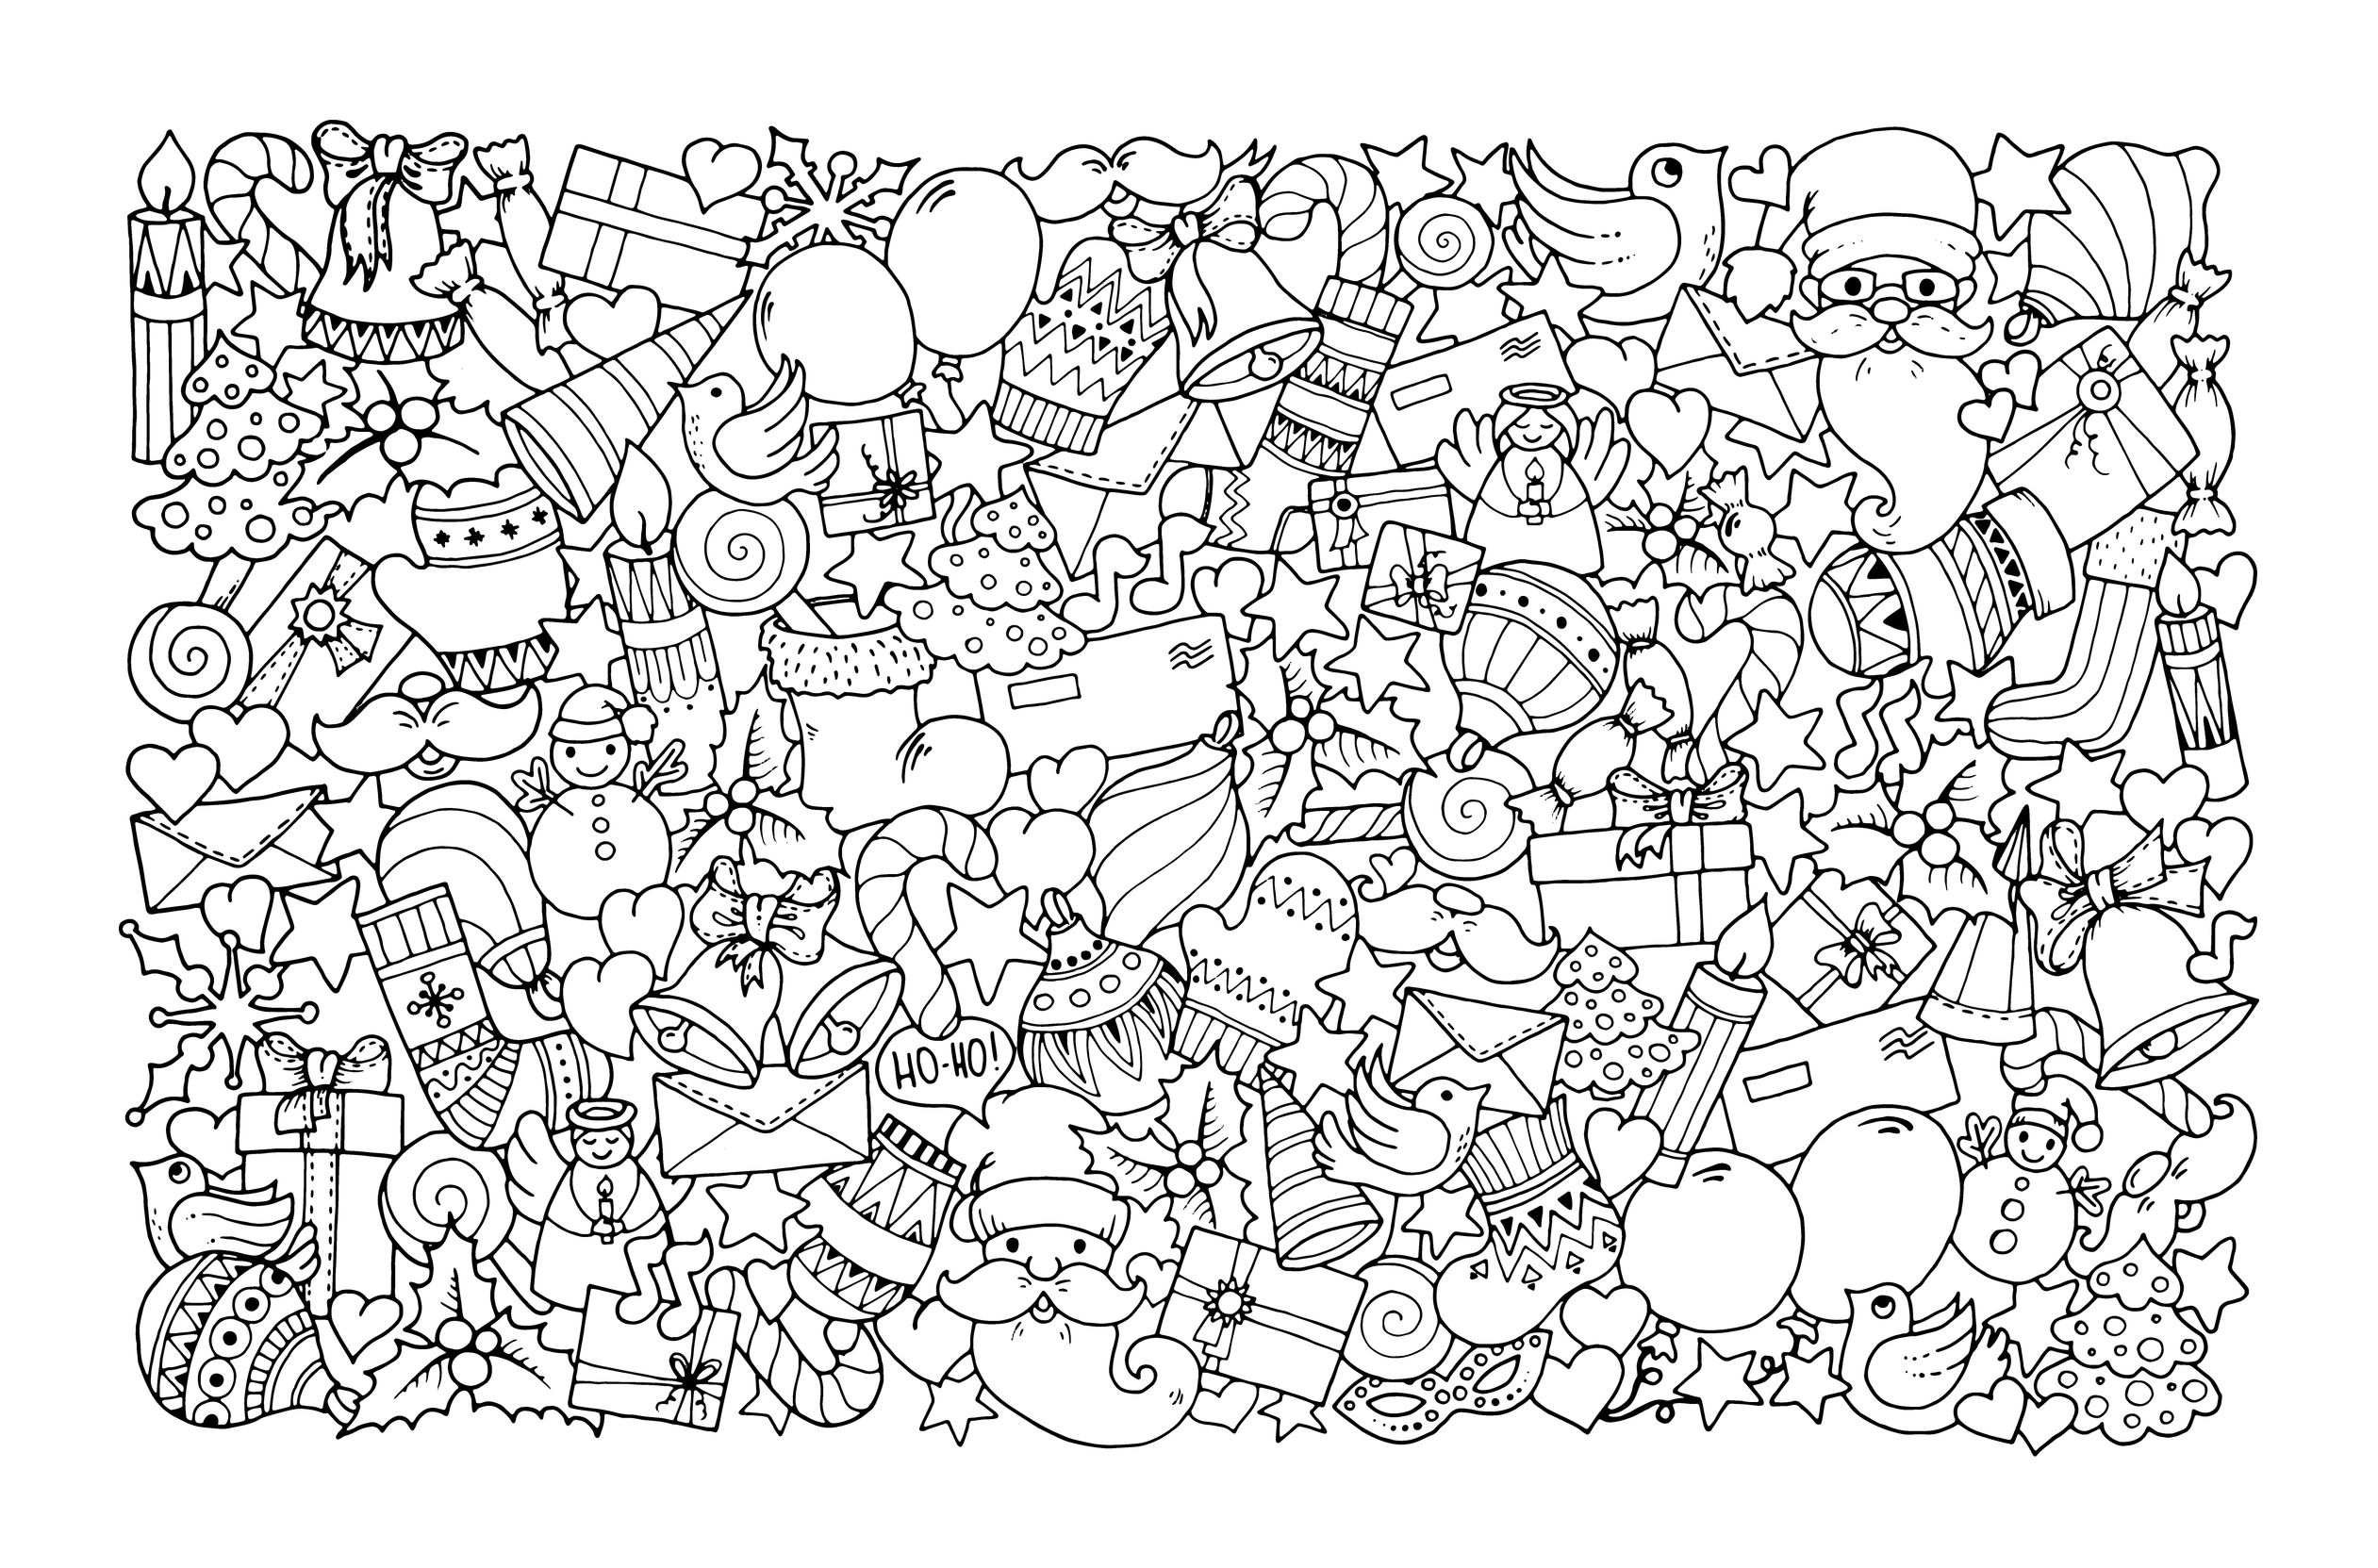 50559284 - christmas theme. doodle background with balloon, bells, sweets, christmas socks, gift, mittens, envelope, letter, tree, star, candle, bird, snowman, ball, bow, heart and santa claus. ethnic ornaments.A partir de la galerie : Noel